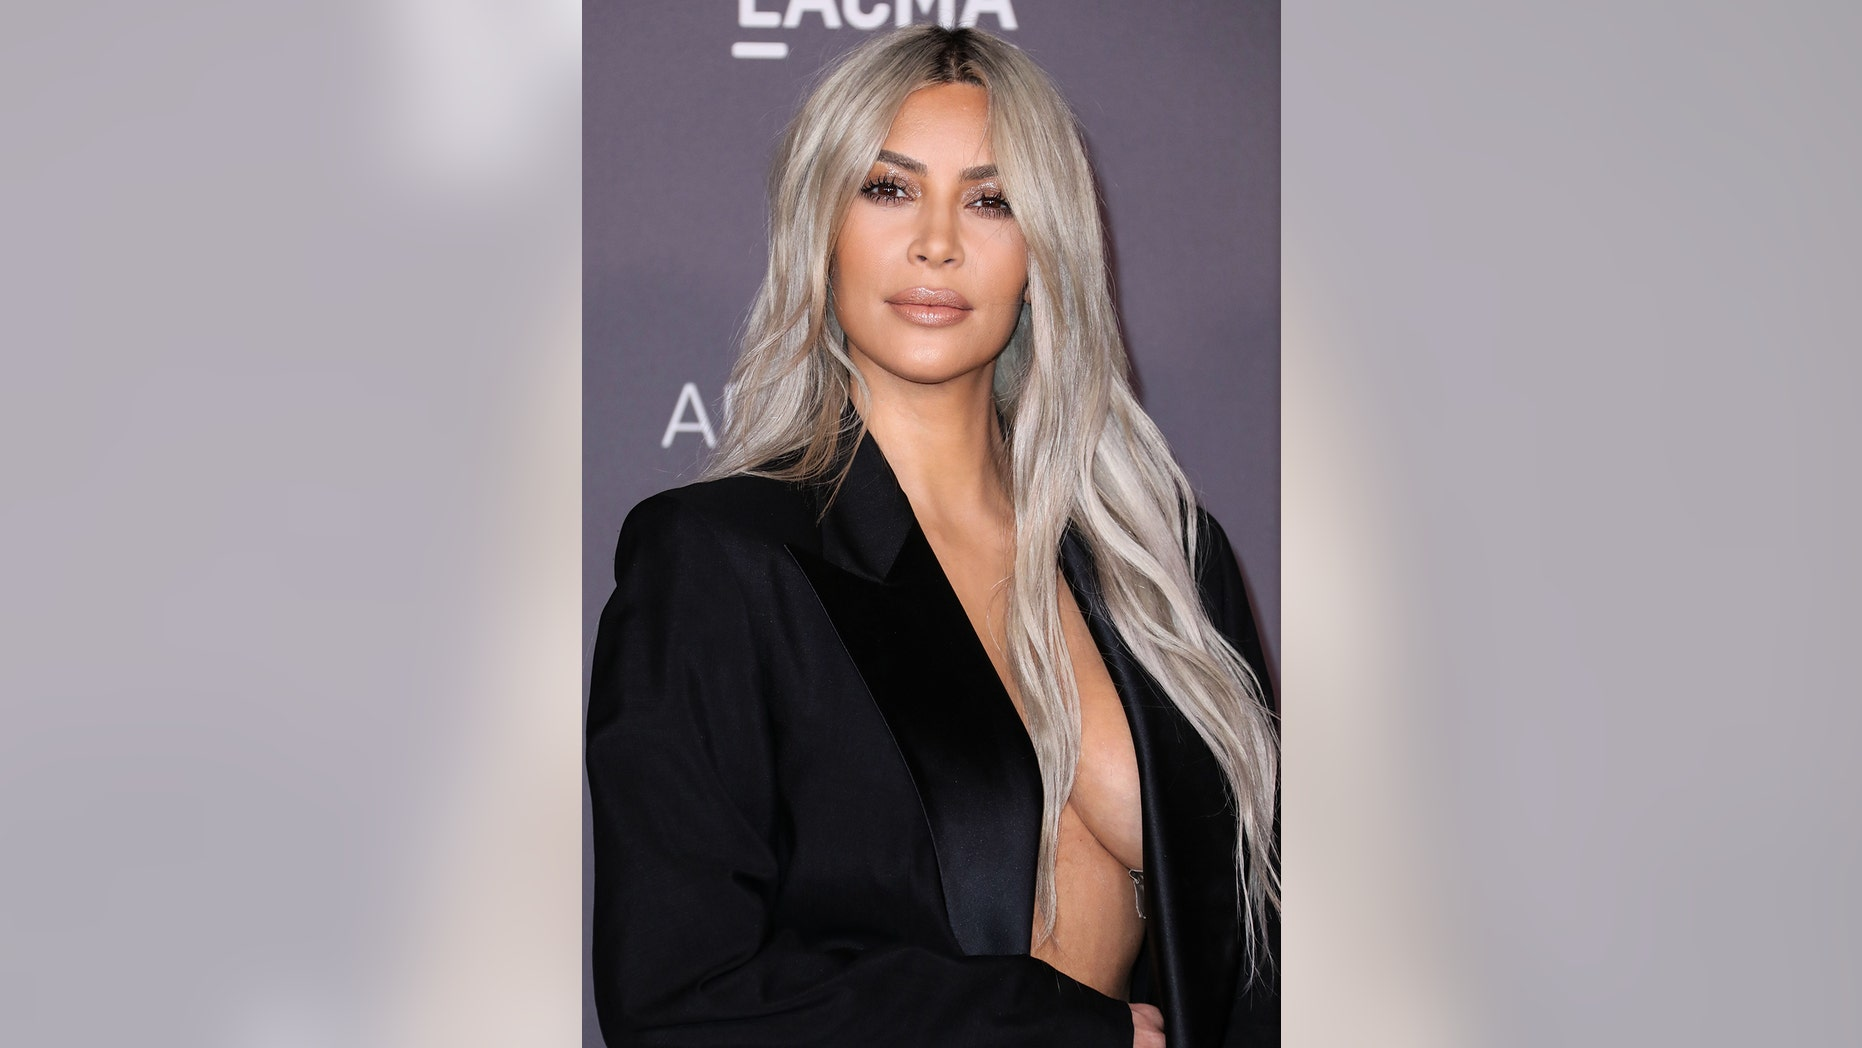 Kim Kardashian sparked outrage online by posting a topless photo taken by her four-year-old daughter.